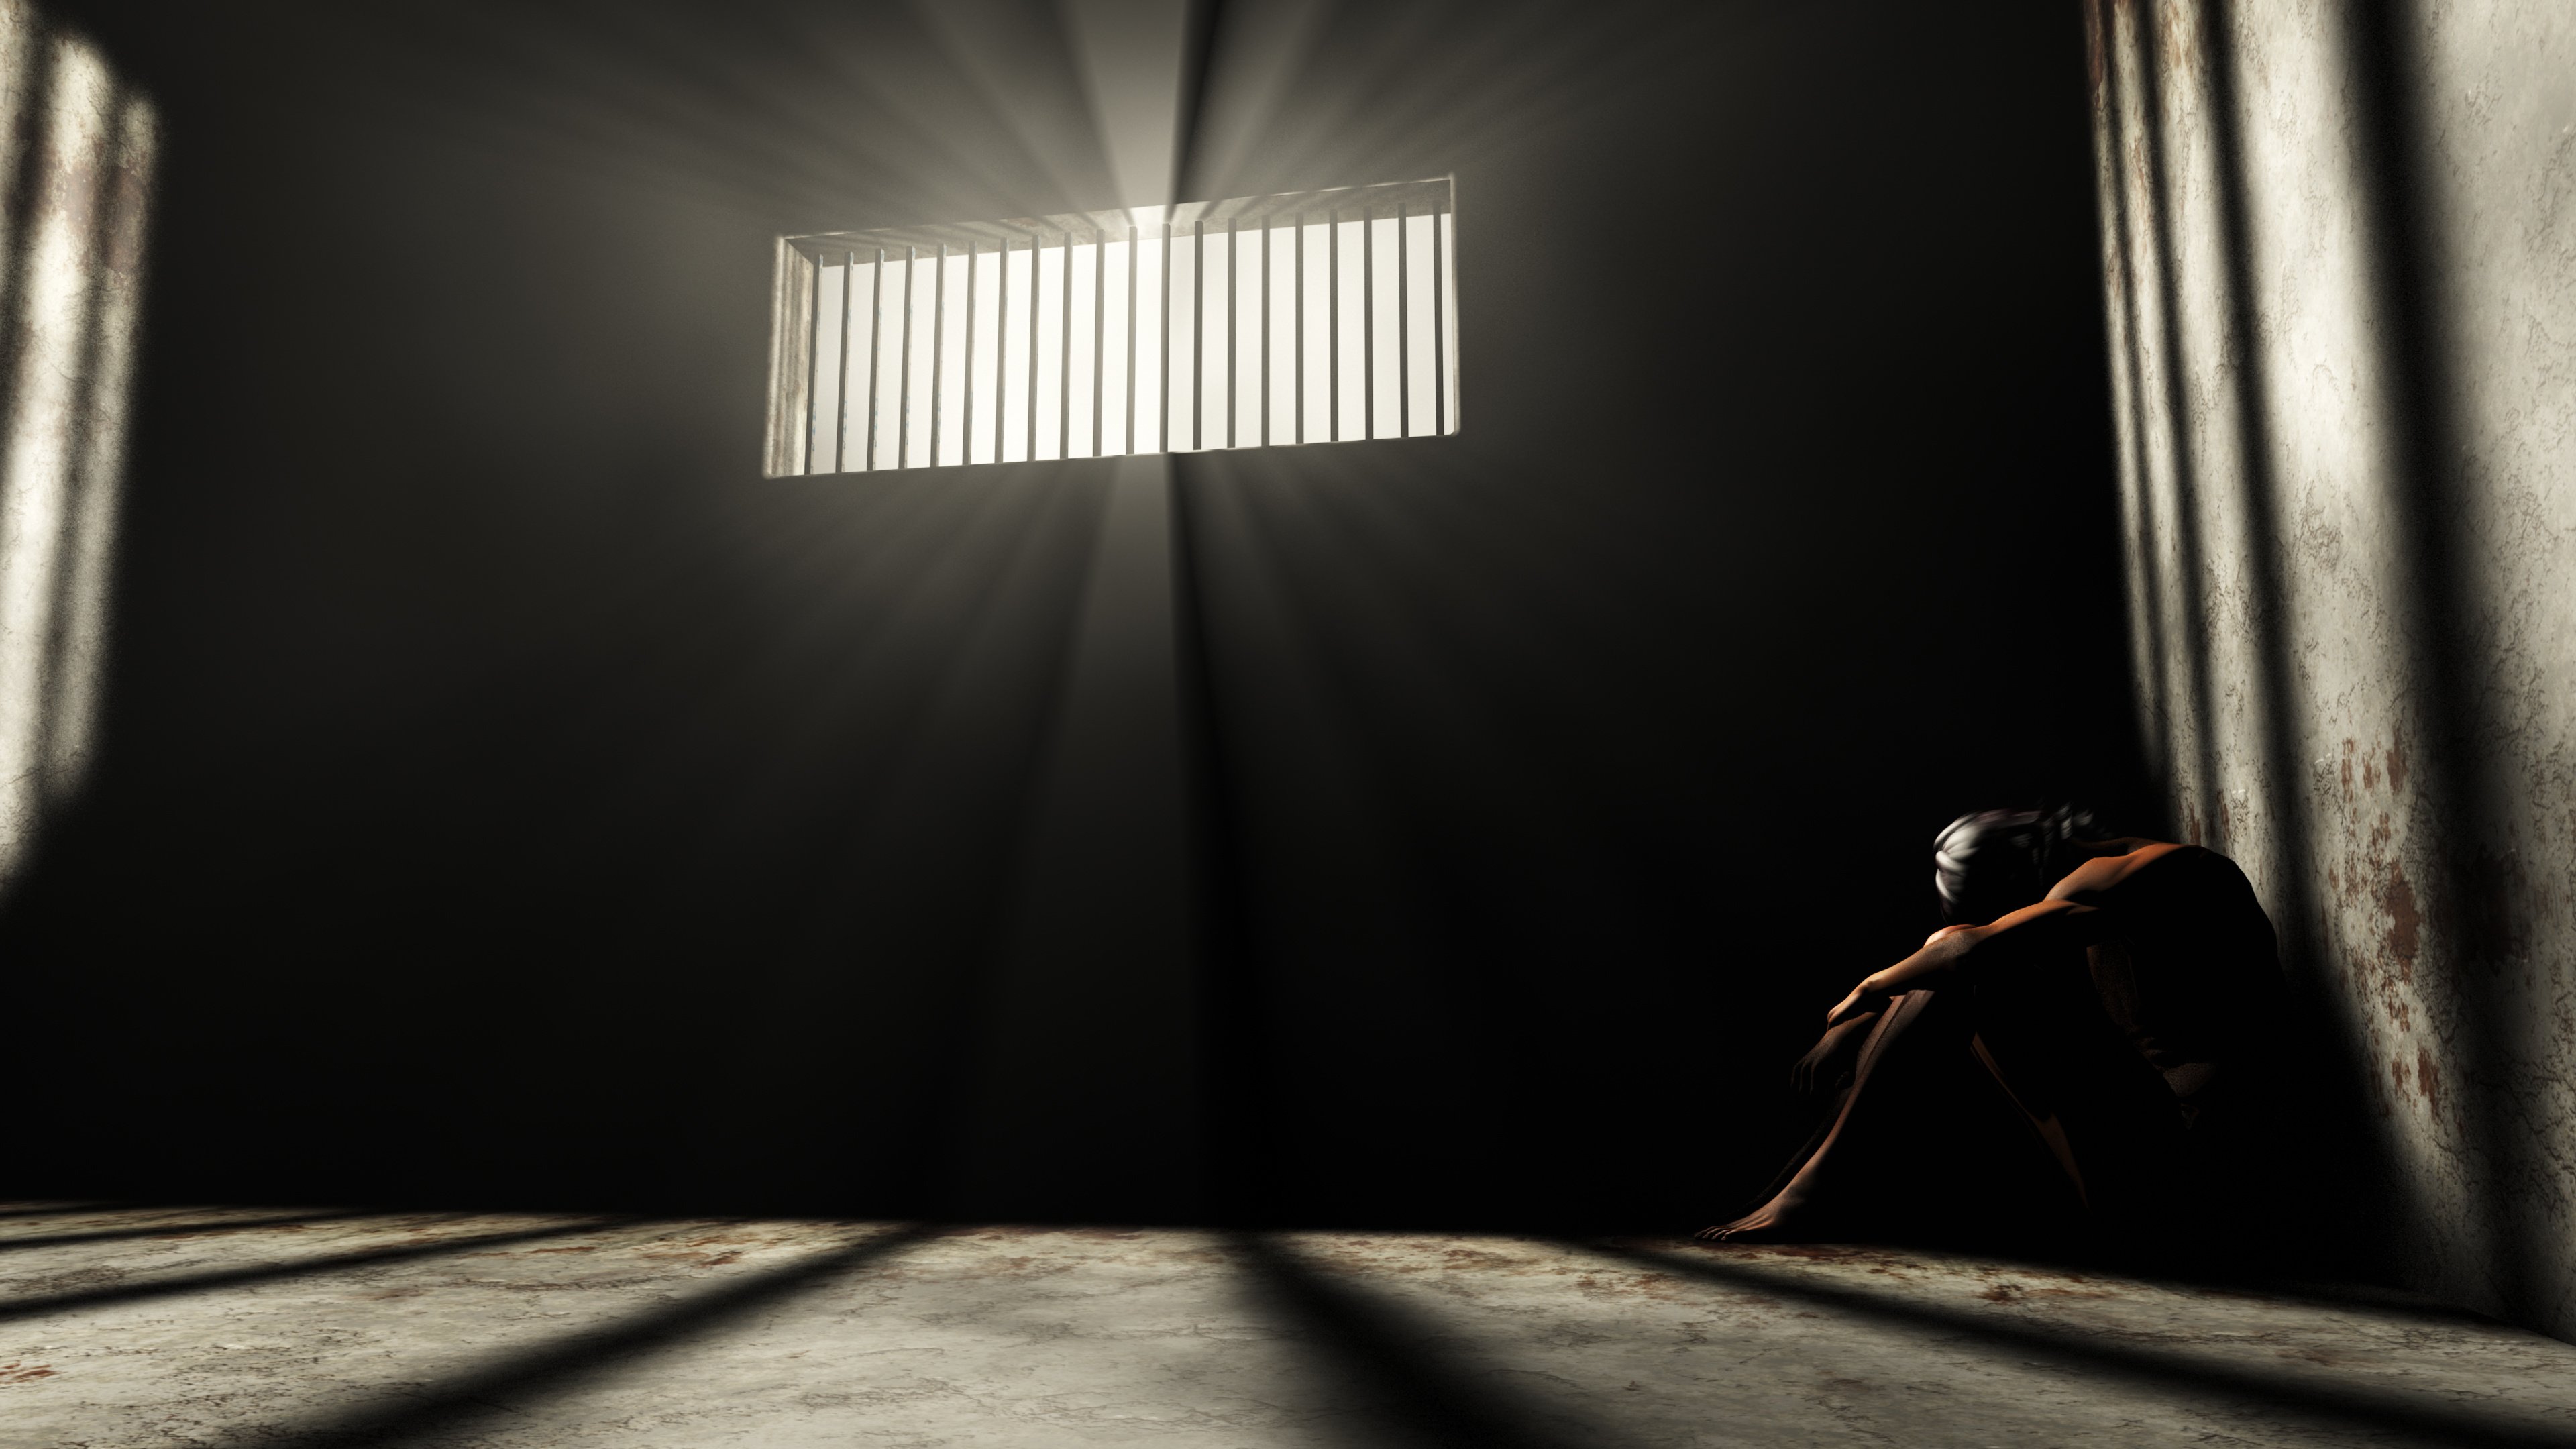 Solitary Confinement Significantly Increases Post-Prison Death Risk